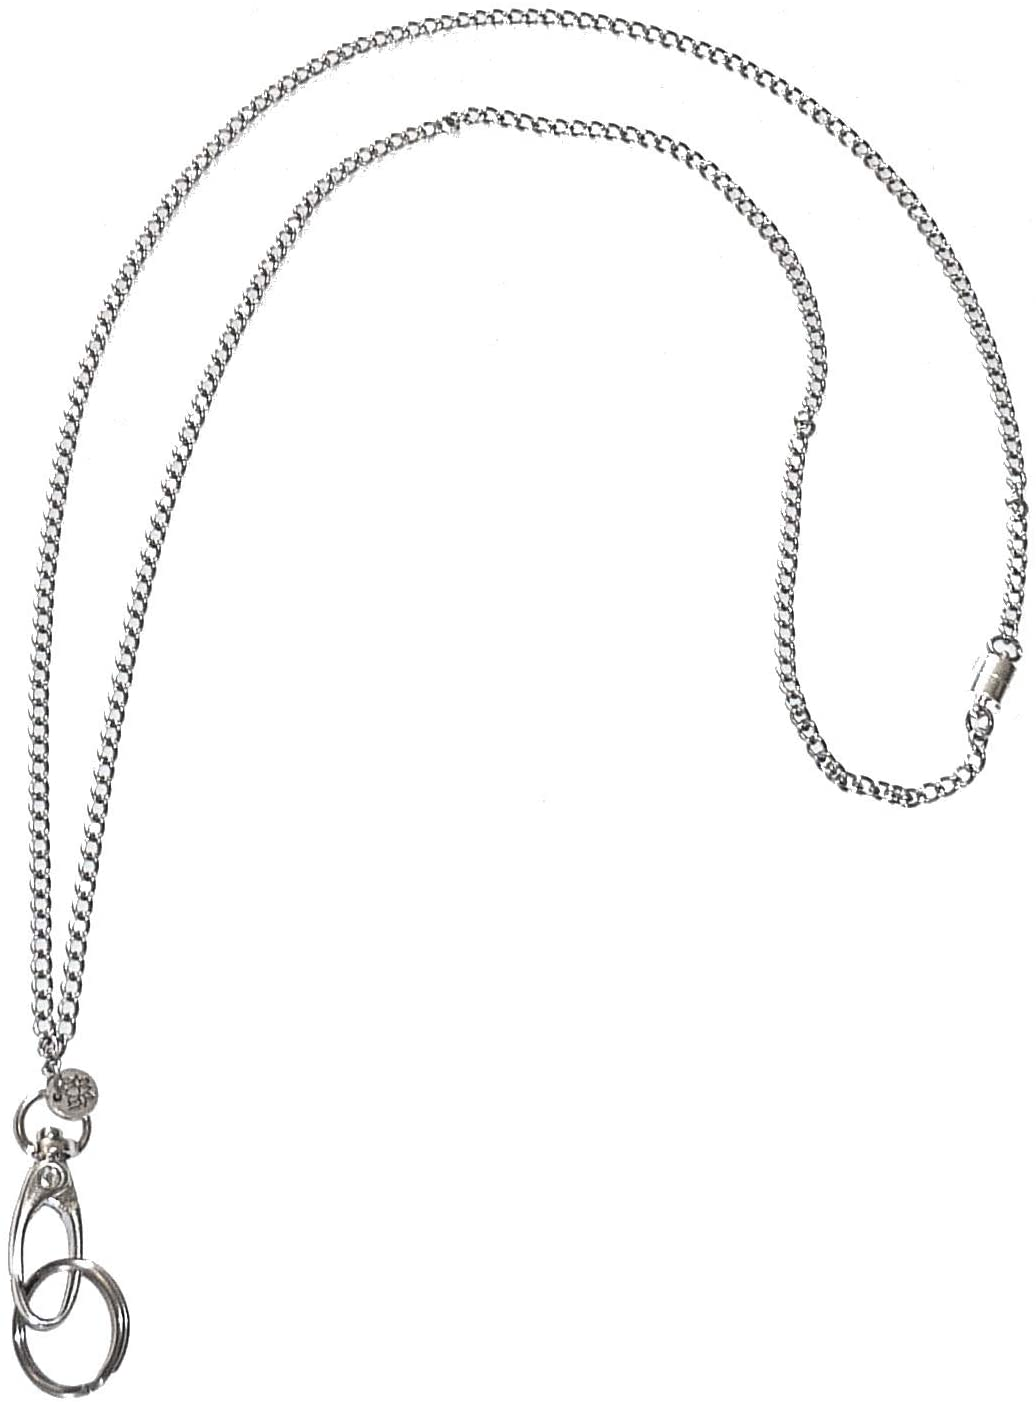 Hidden Hollow Beads, Stainless Steel Chain Fashion Lanyard Necklace, Made in USA, 34